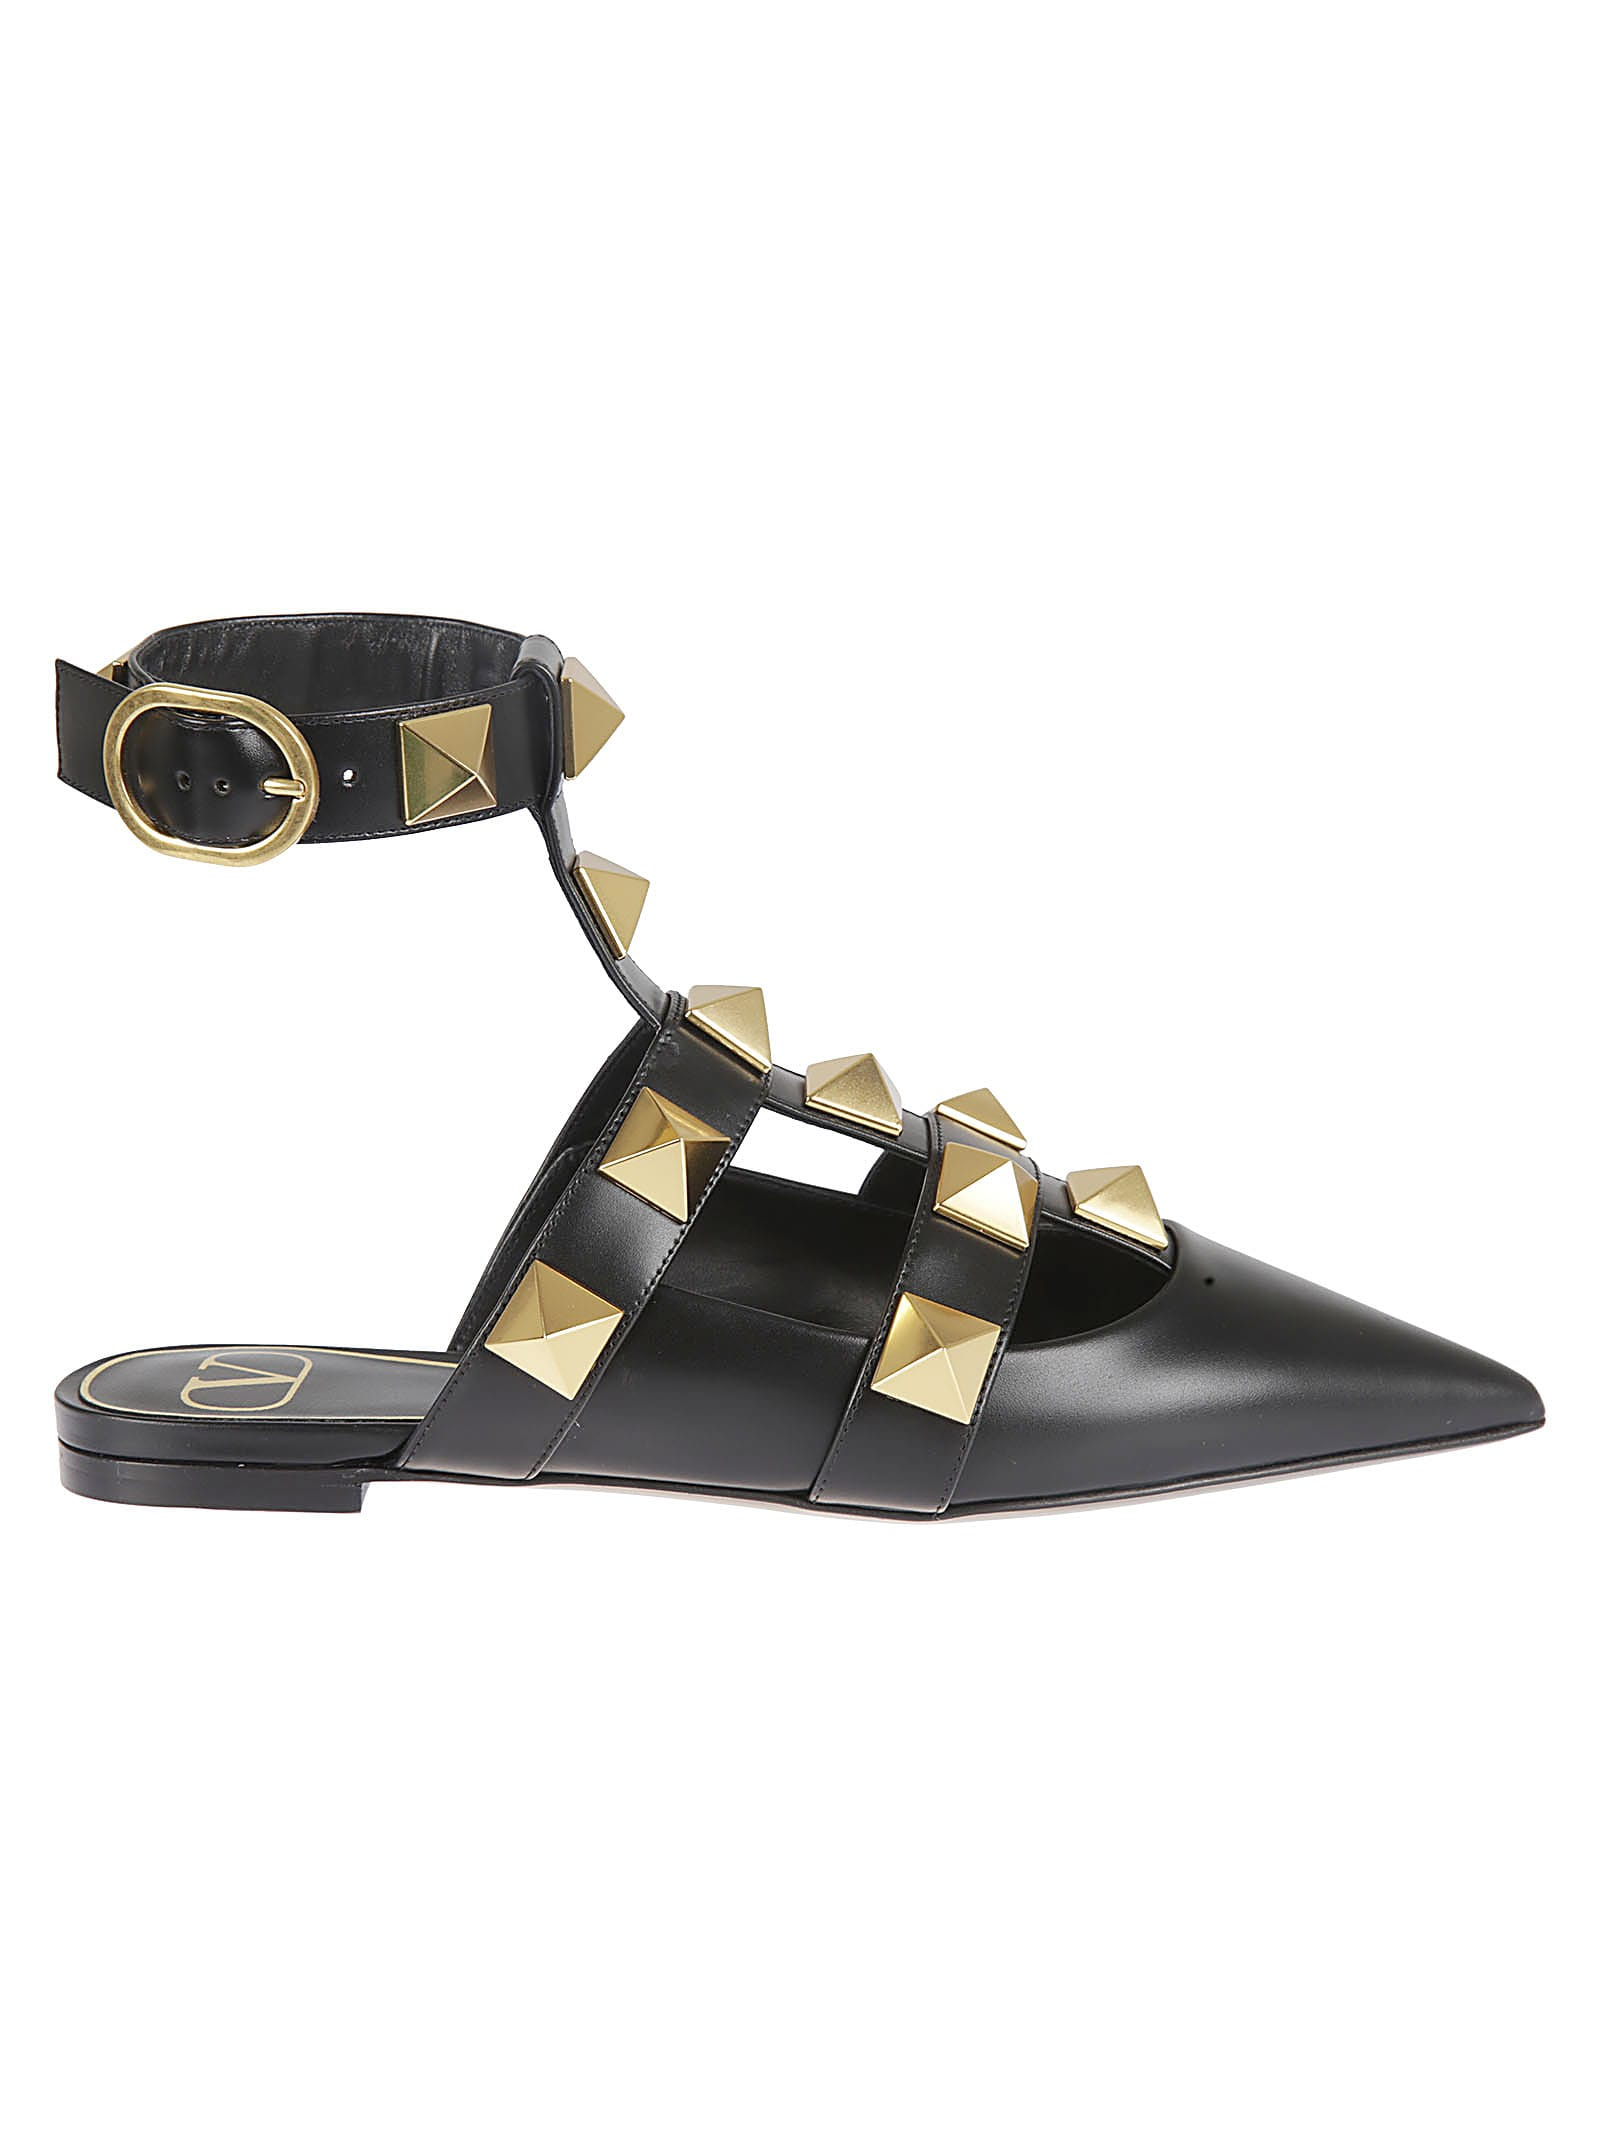 Valentino Garavani Pyramid Studded Side Buckle Ballerinas